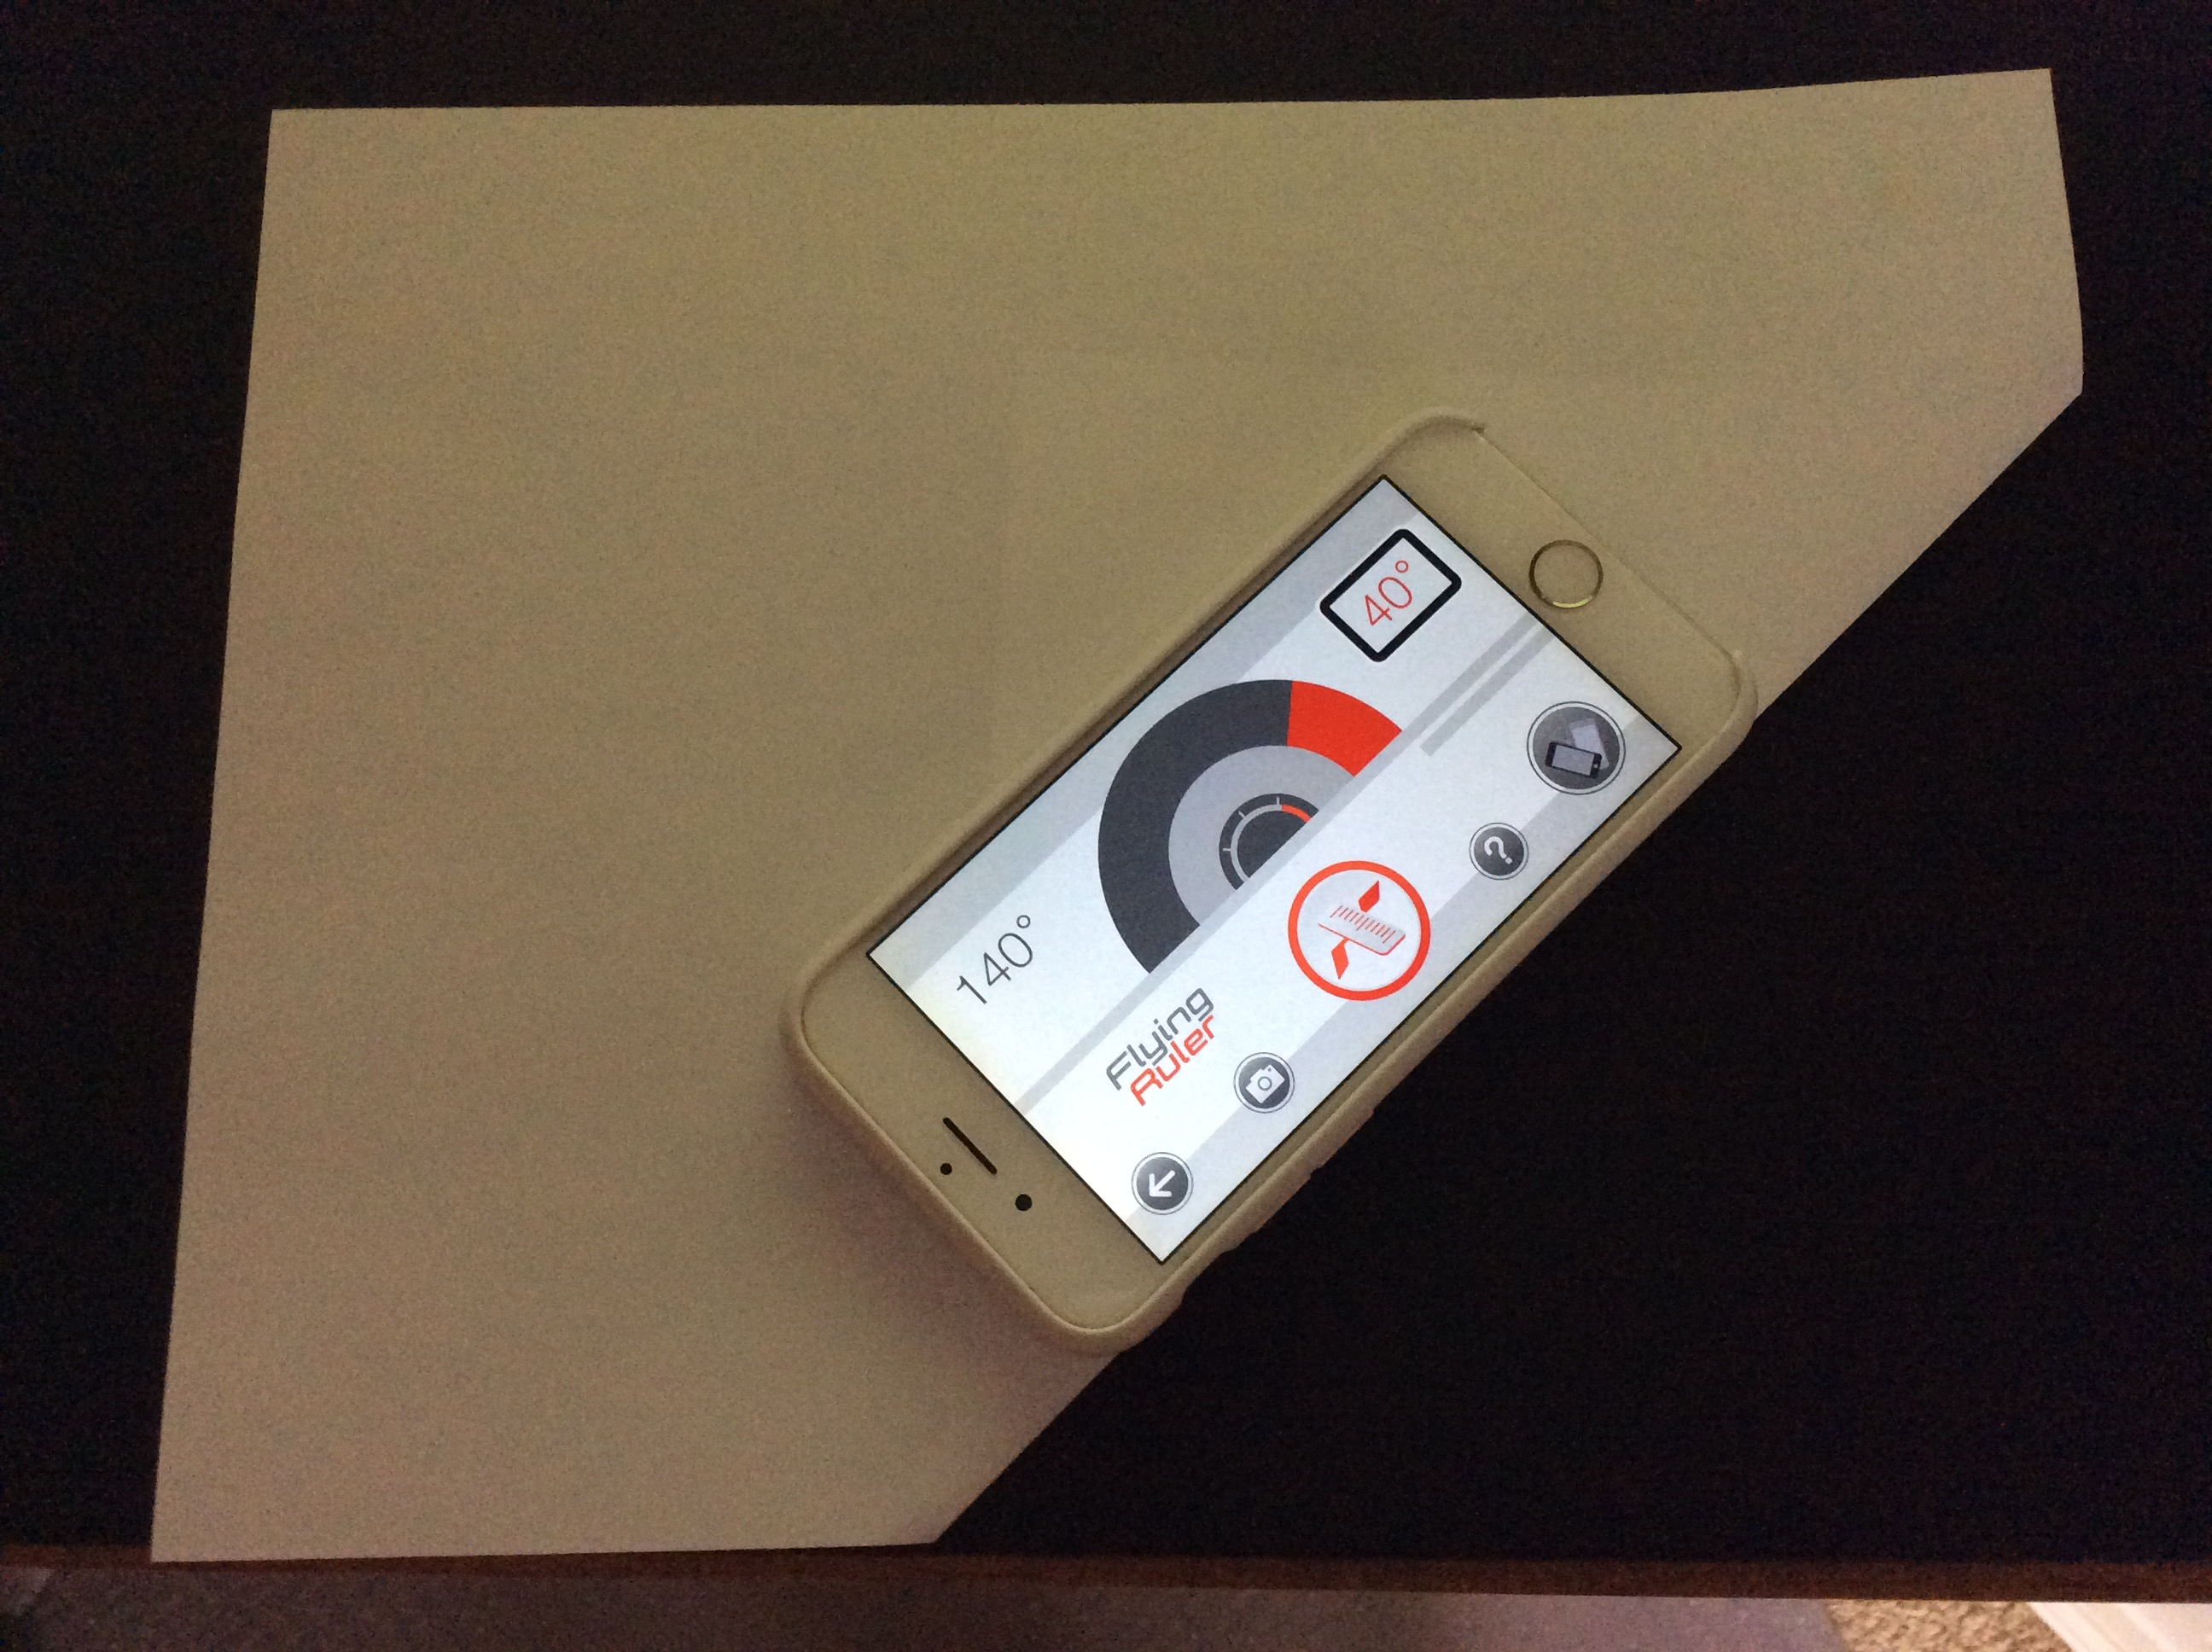 Bottom edge of the phone aligned with folded edge of the paper; Move to Measure app displaying 40 Degrees.